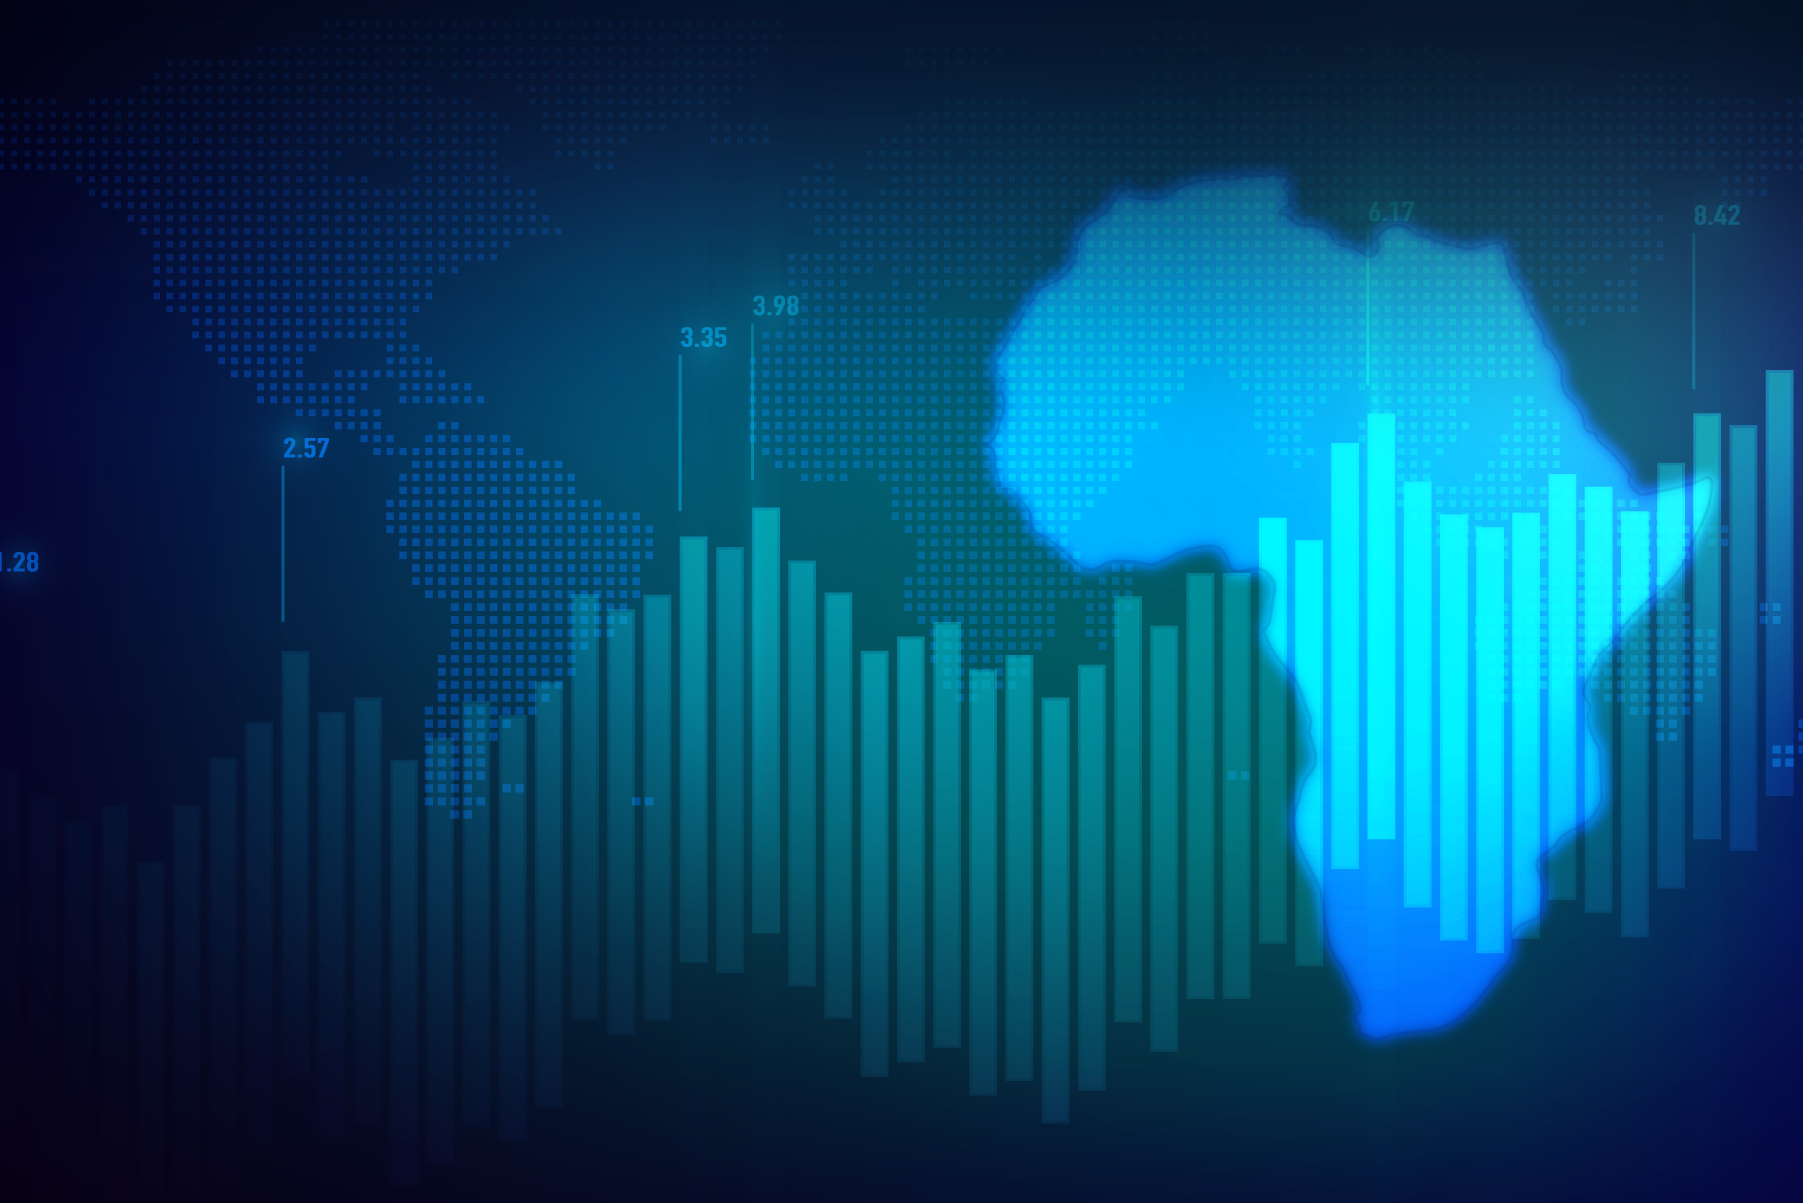 A Cashless Economy Can Spearhead Africa's Economic Growth